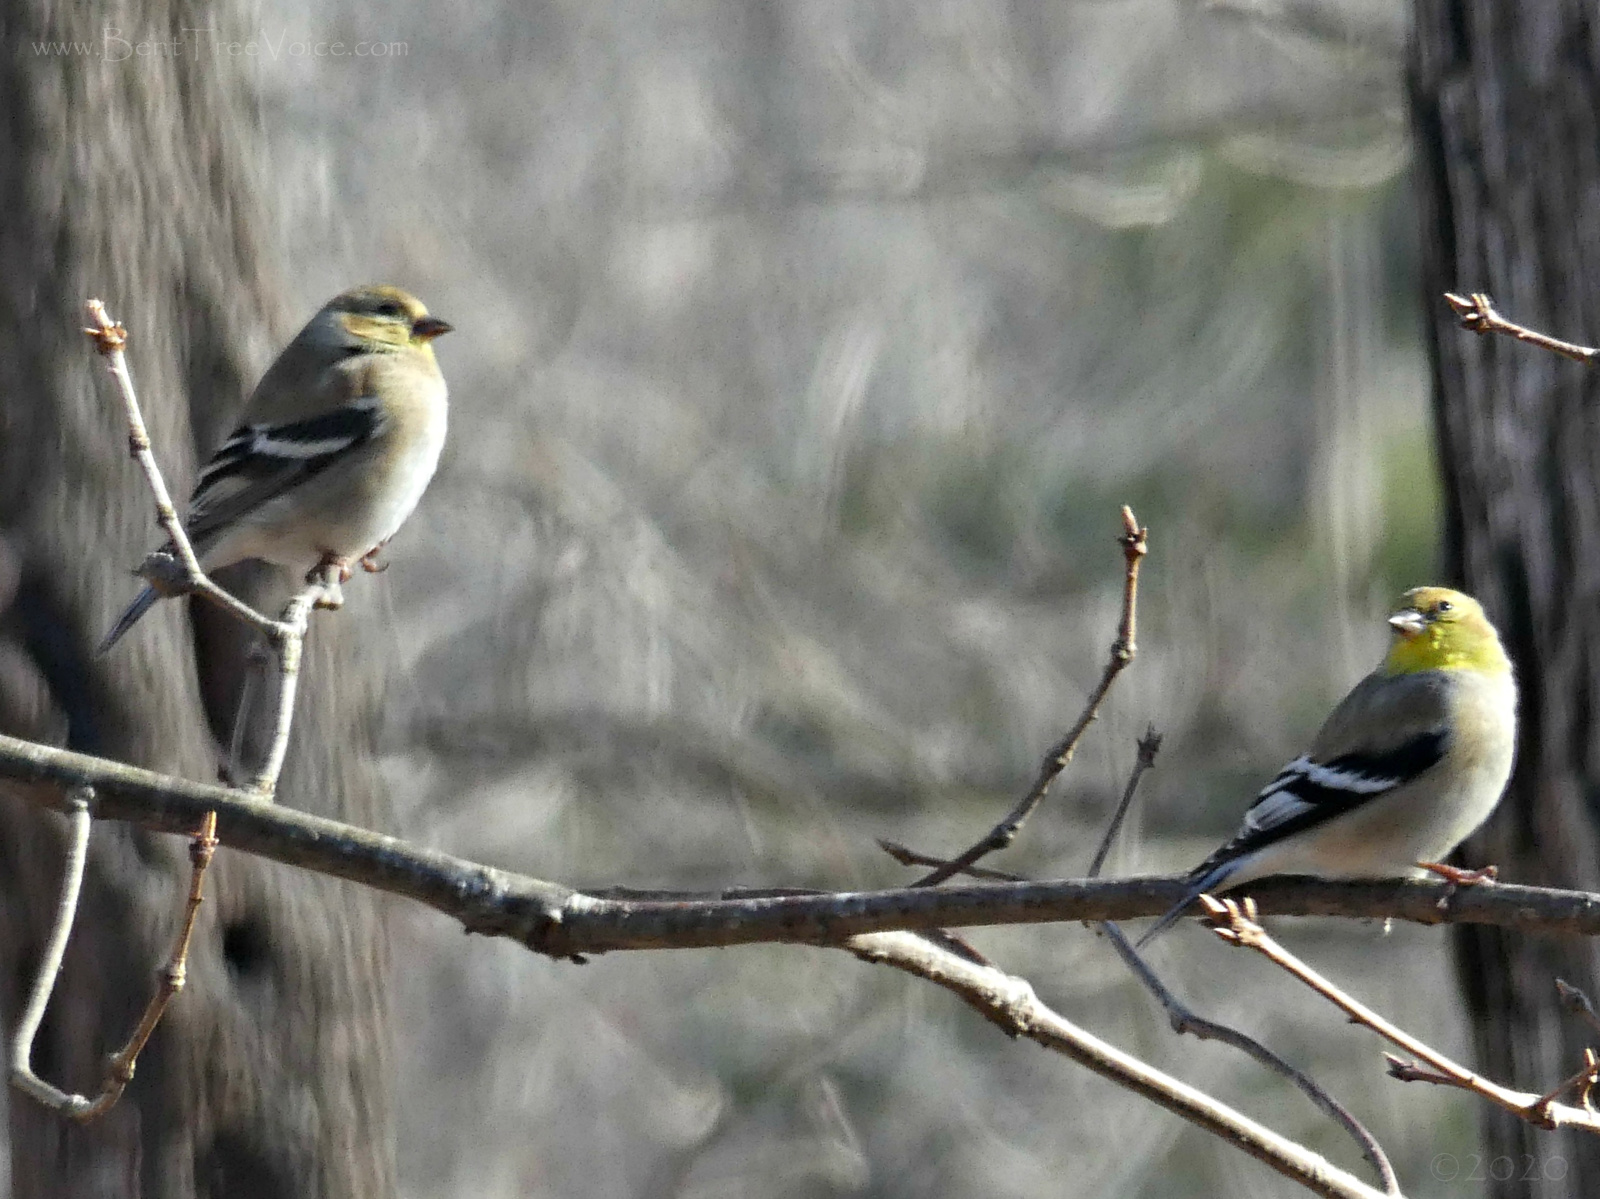 February 22, 2020 - Goldfinches in Bent Tree